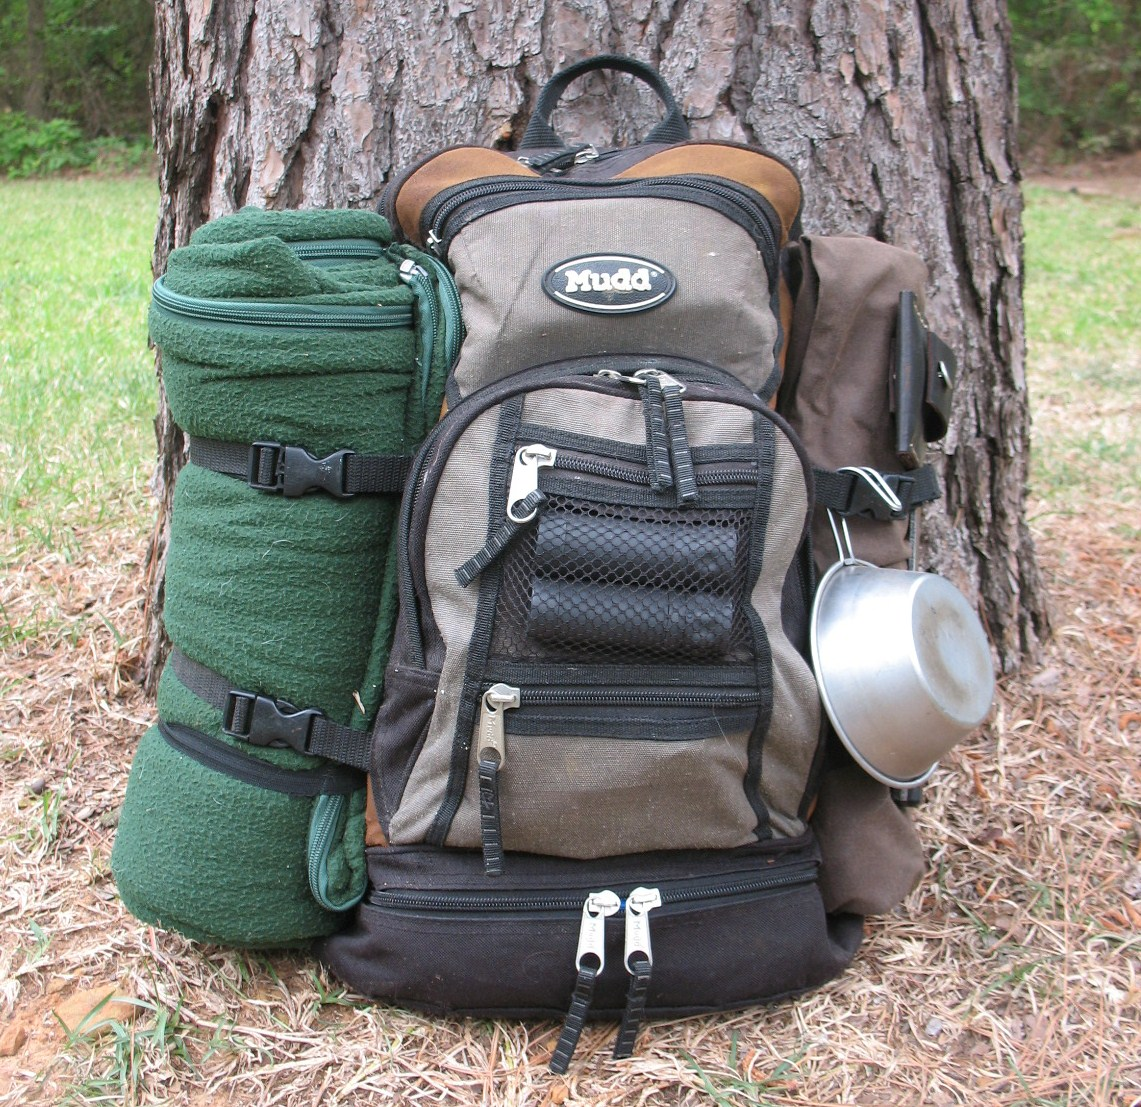 My Ultimate Bug Out Gear Part 1 Sensible Survival